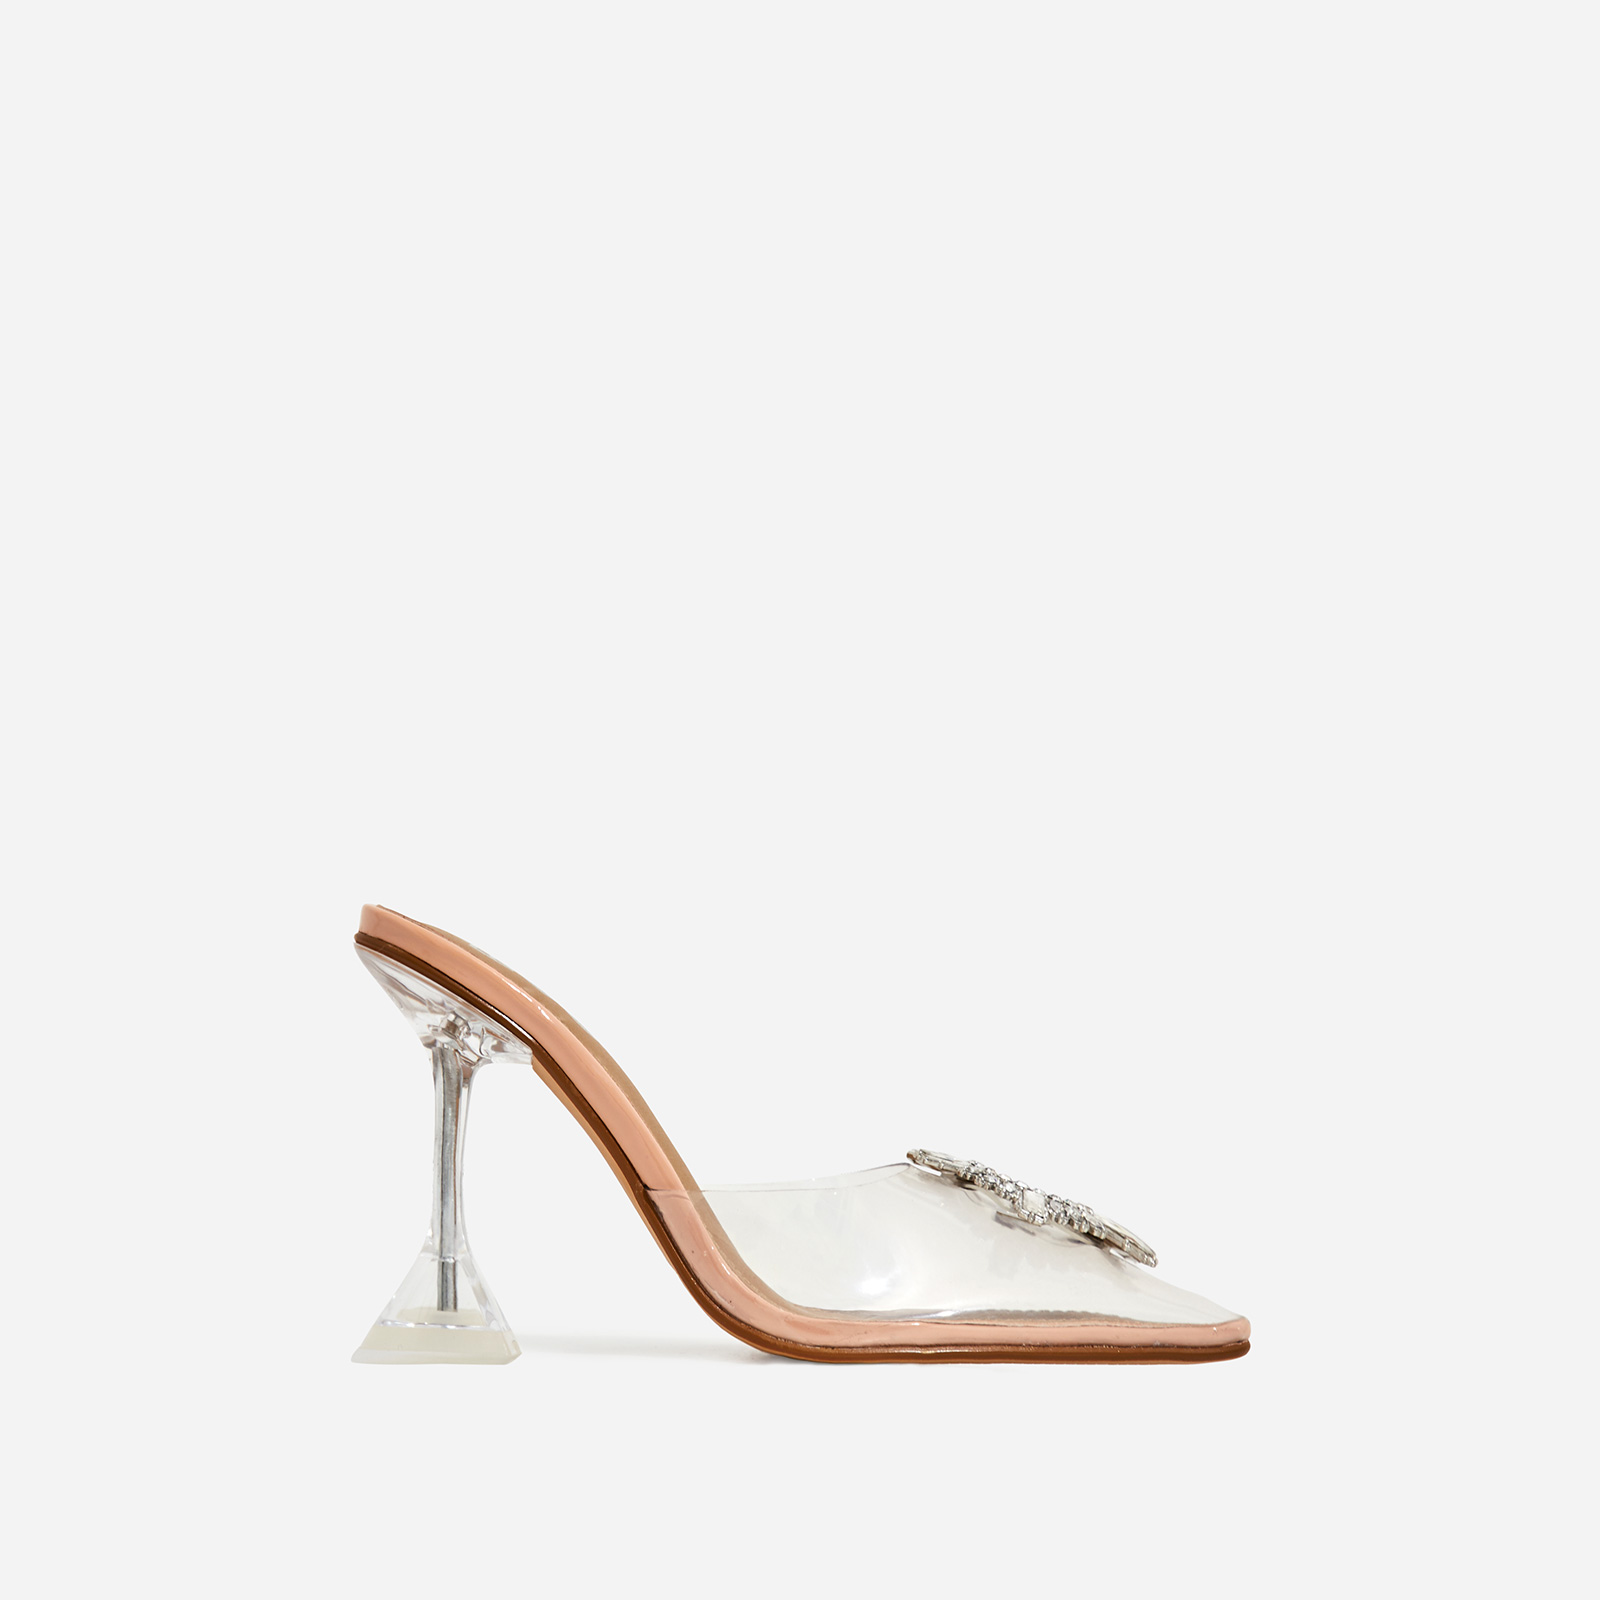 Midnight Diamante Detail Perspex Heel Mule In Nude Patent